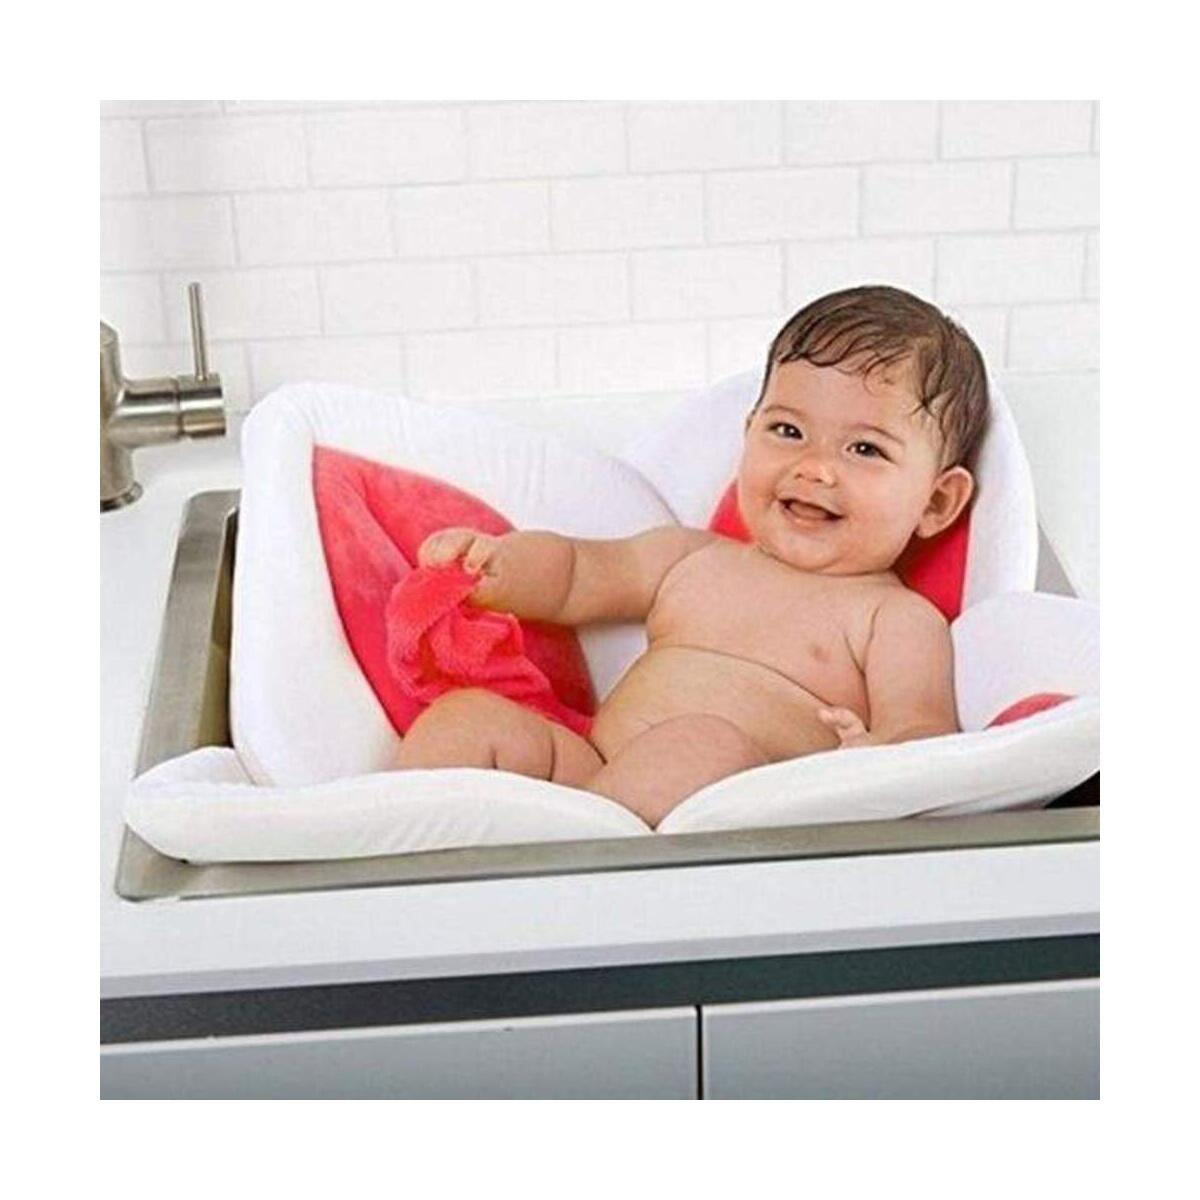 Infant Blooming Lotus Flowers Sink Baby Bath Mat Fashion